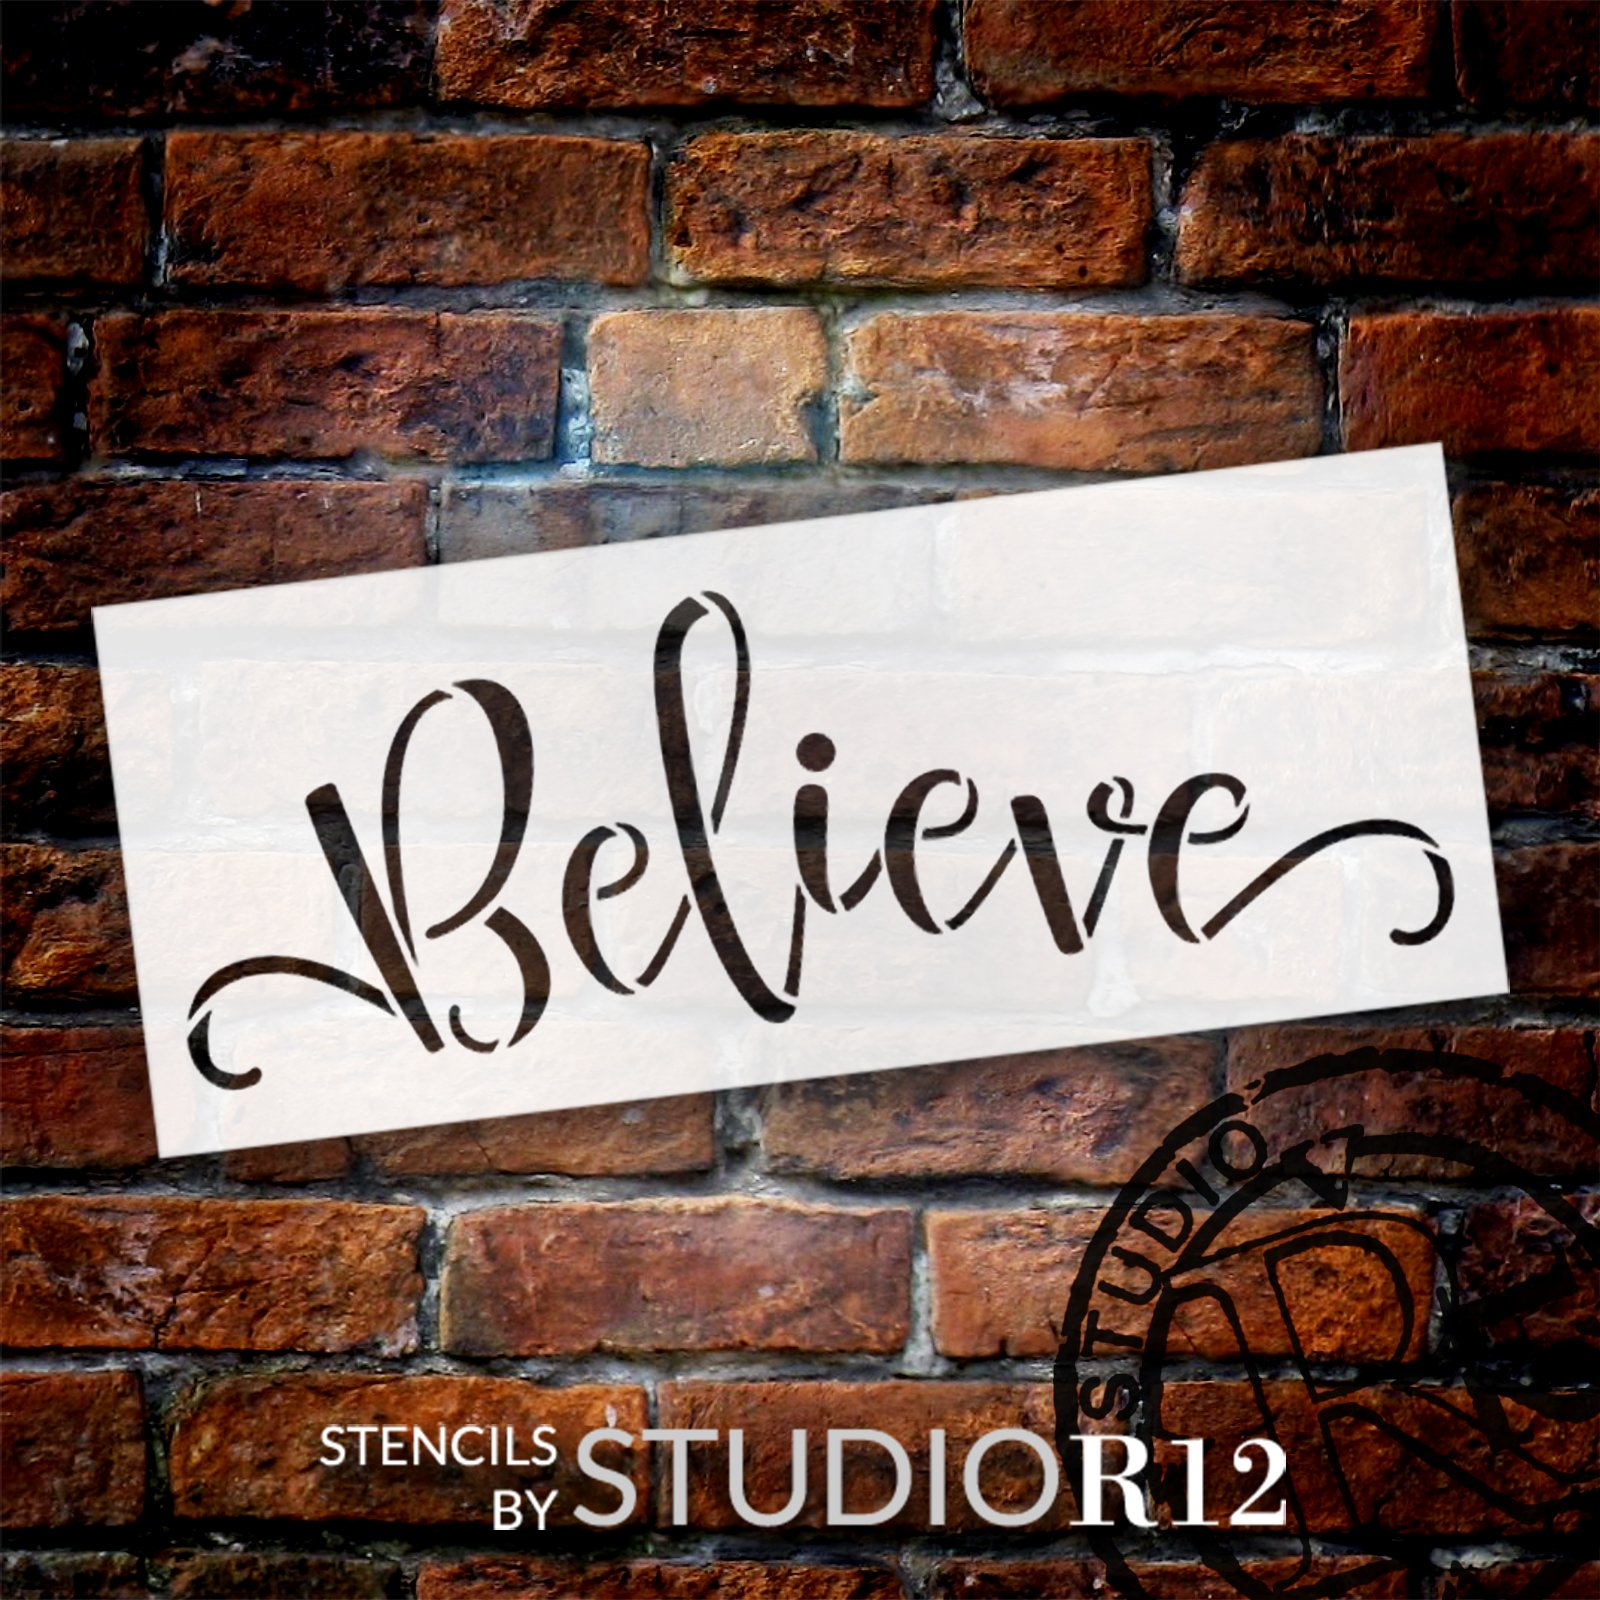 Believe Script Stencil by StudioR12 | DIY Christmas Word Art Home Decor | Craft & Paint Inspirational Wood Signs | Select Size